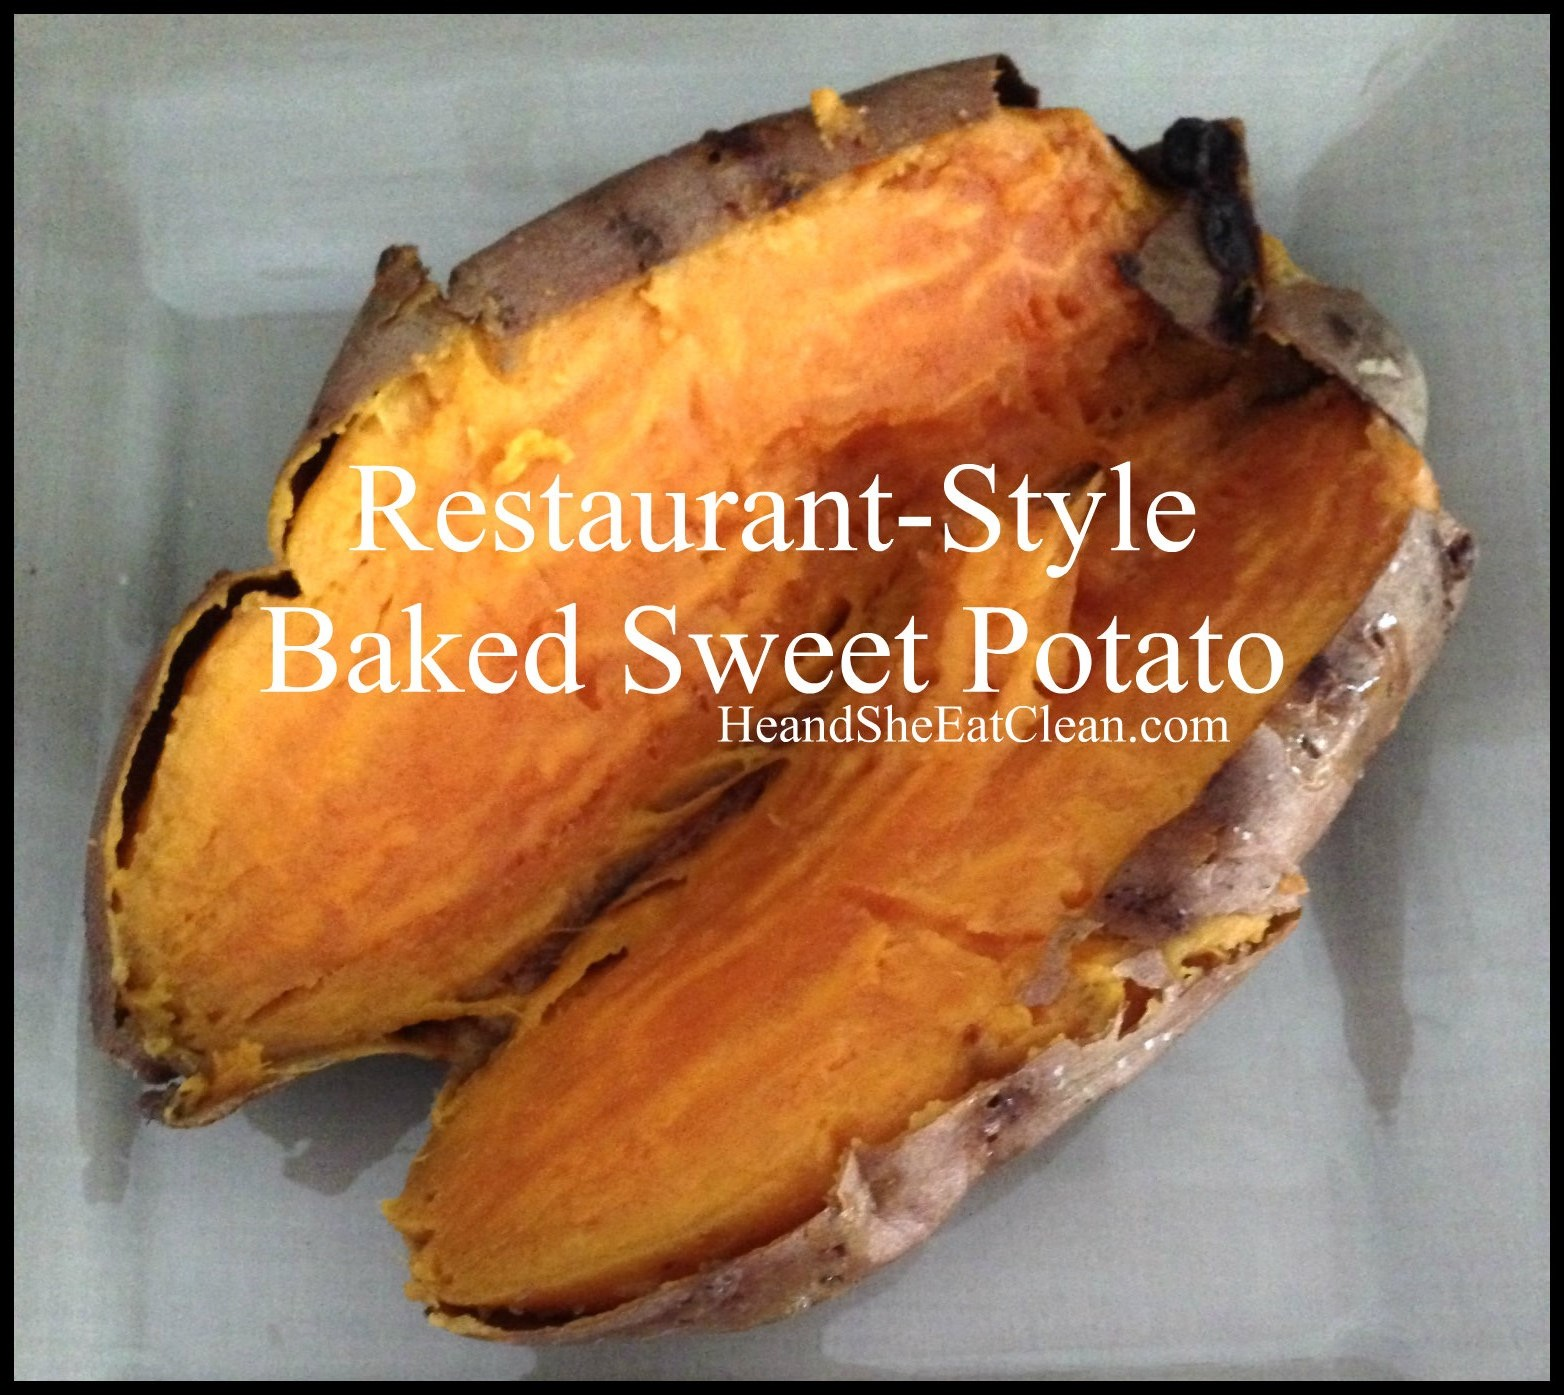 ... Recipe :: Restaurant-Style Baked Sweet Potato ~ He and She Eat Clean